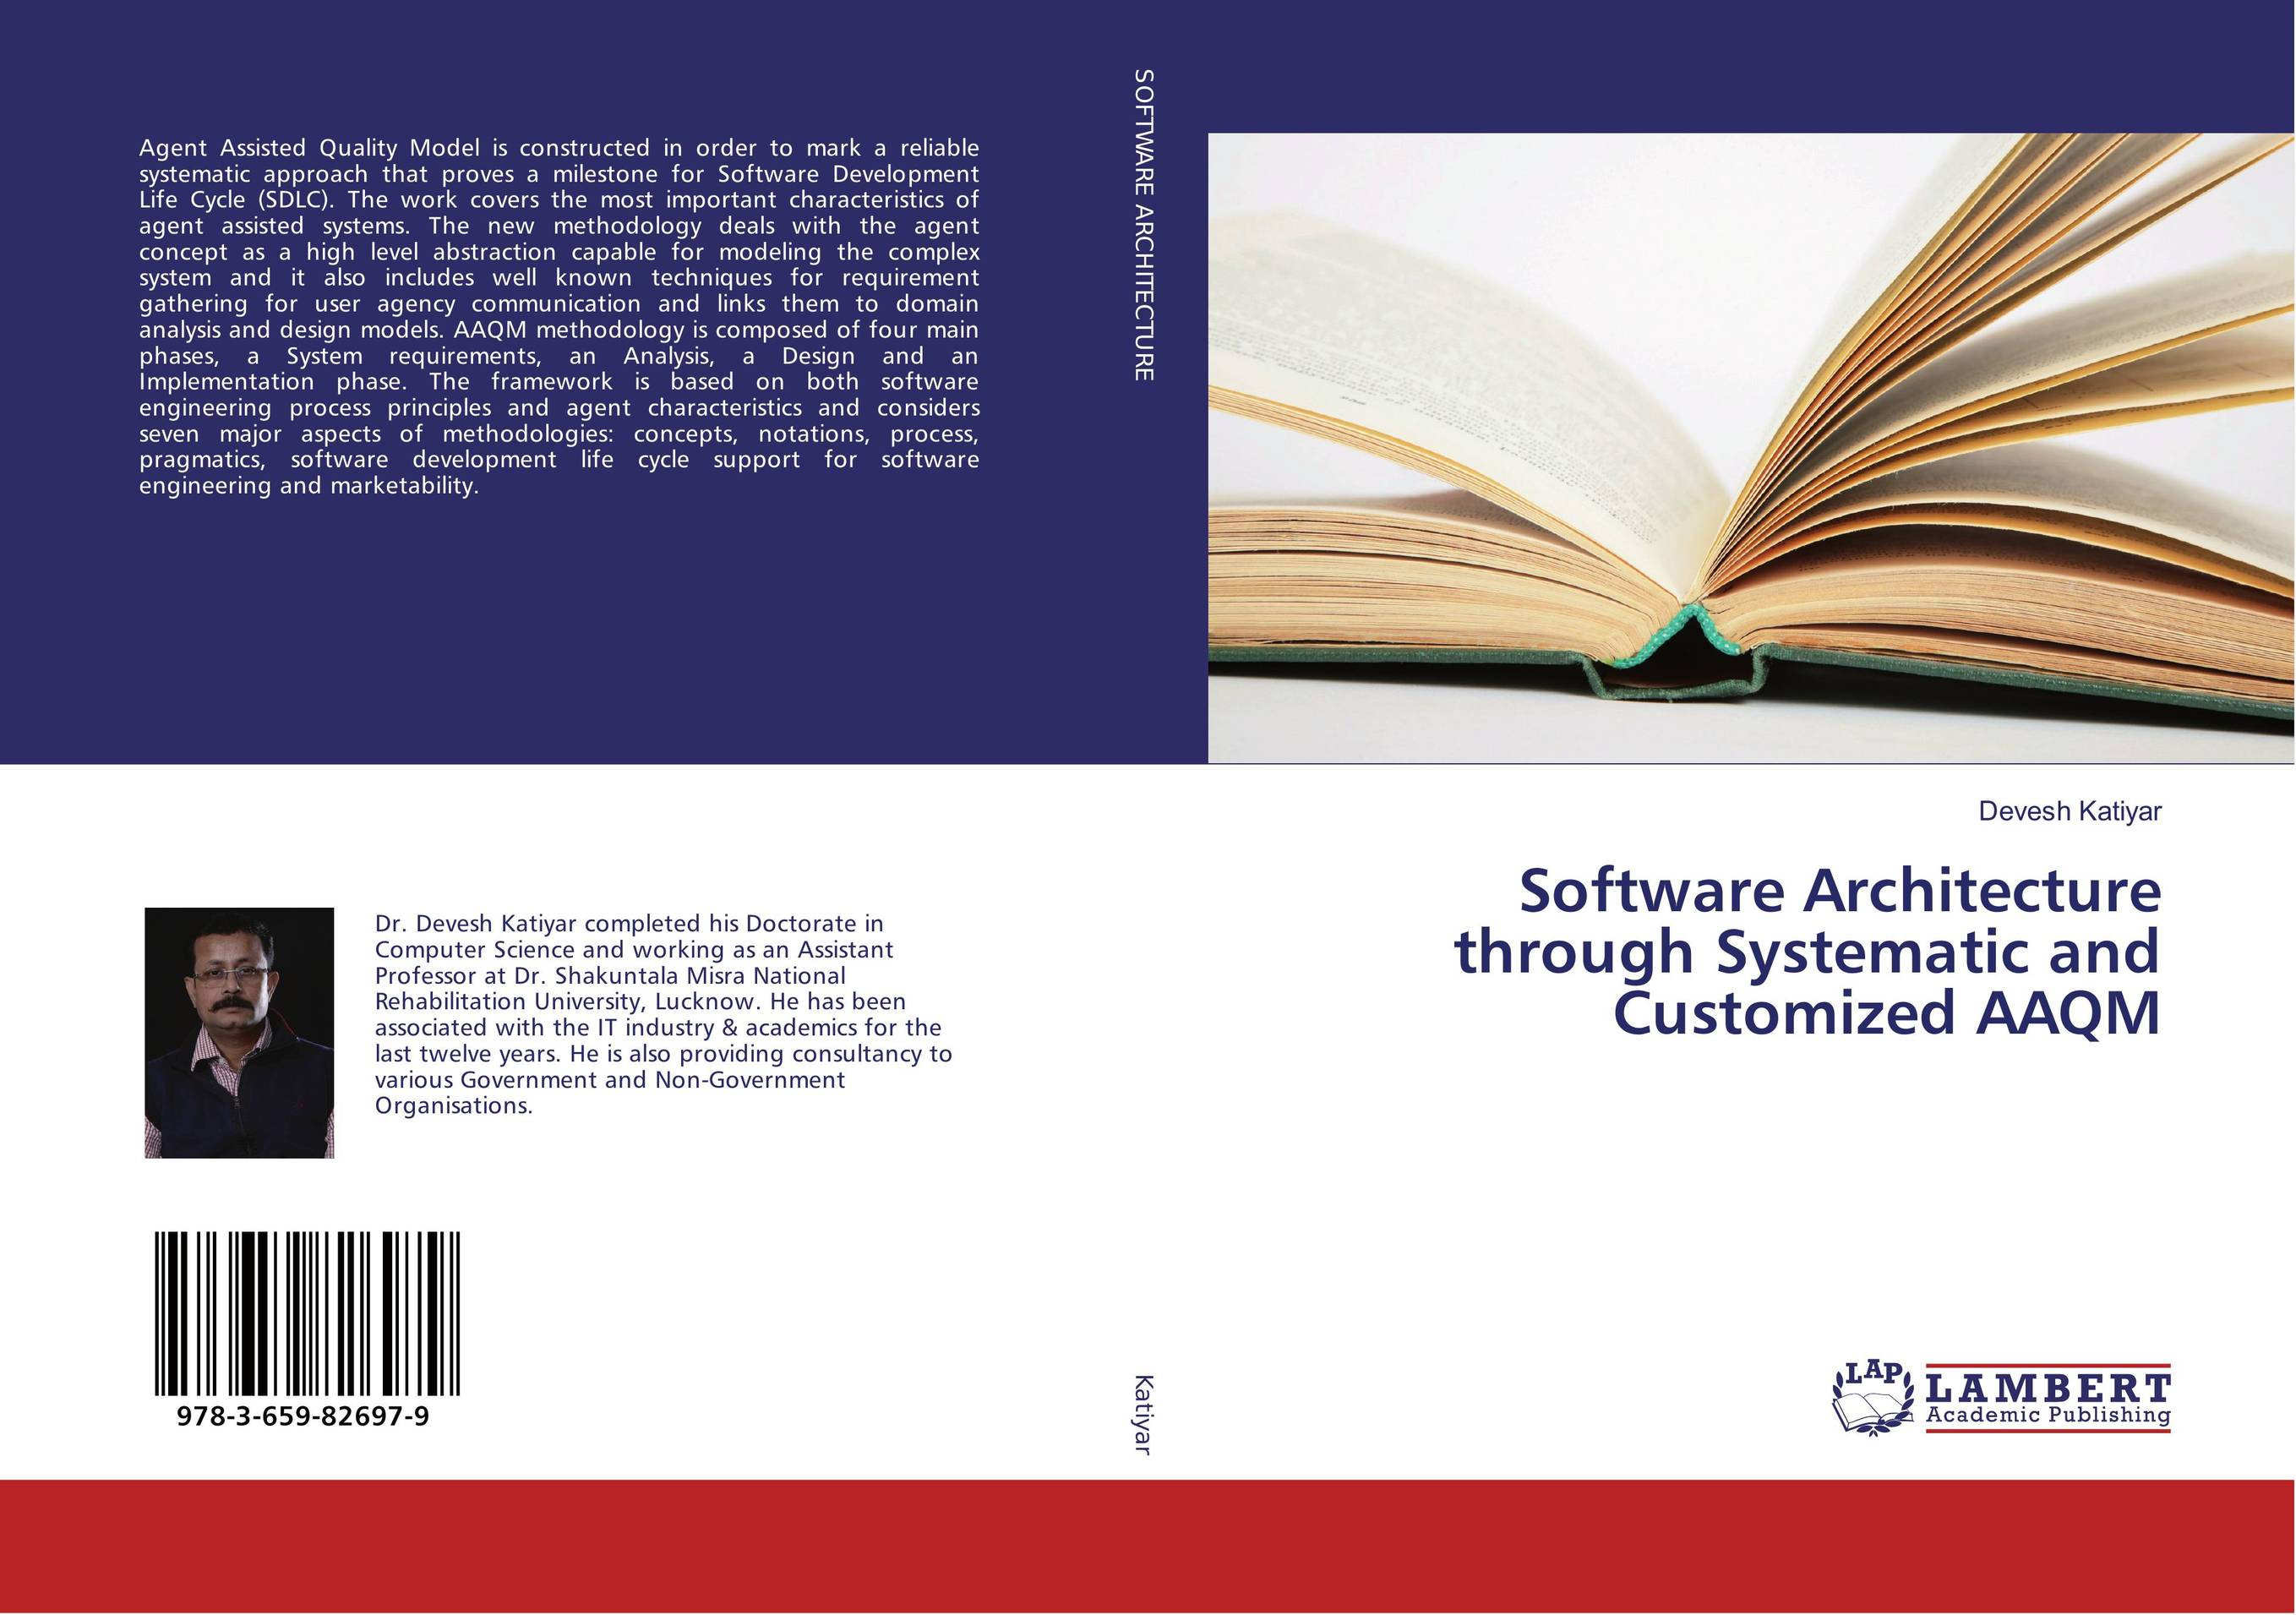 Software Architecture through Systematic and Customized AAQM software architecture and system requirements